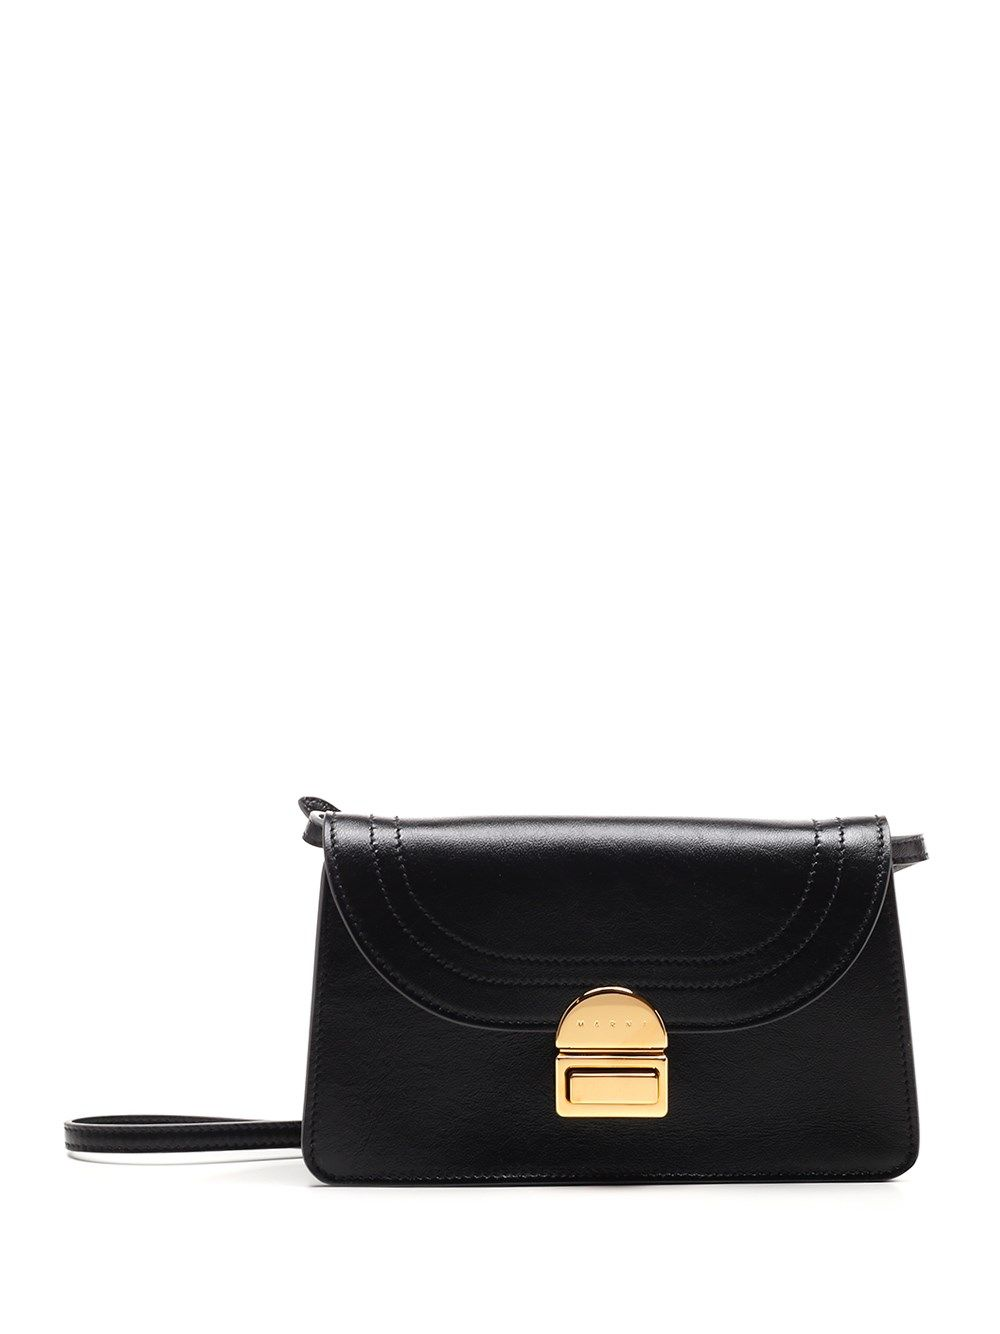 Marni MARNI WOMEN'S PHMP0026Y0P264400N99 BLACK OTHER MATERIALS SHOULDER BAG